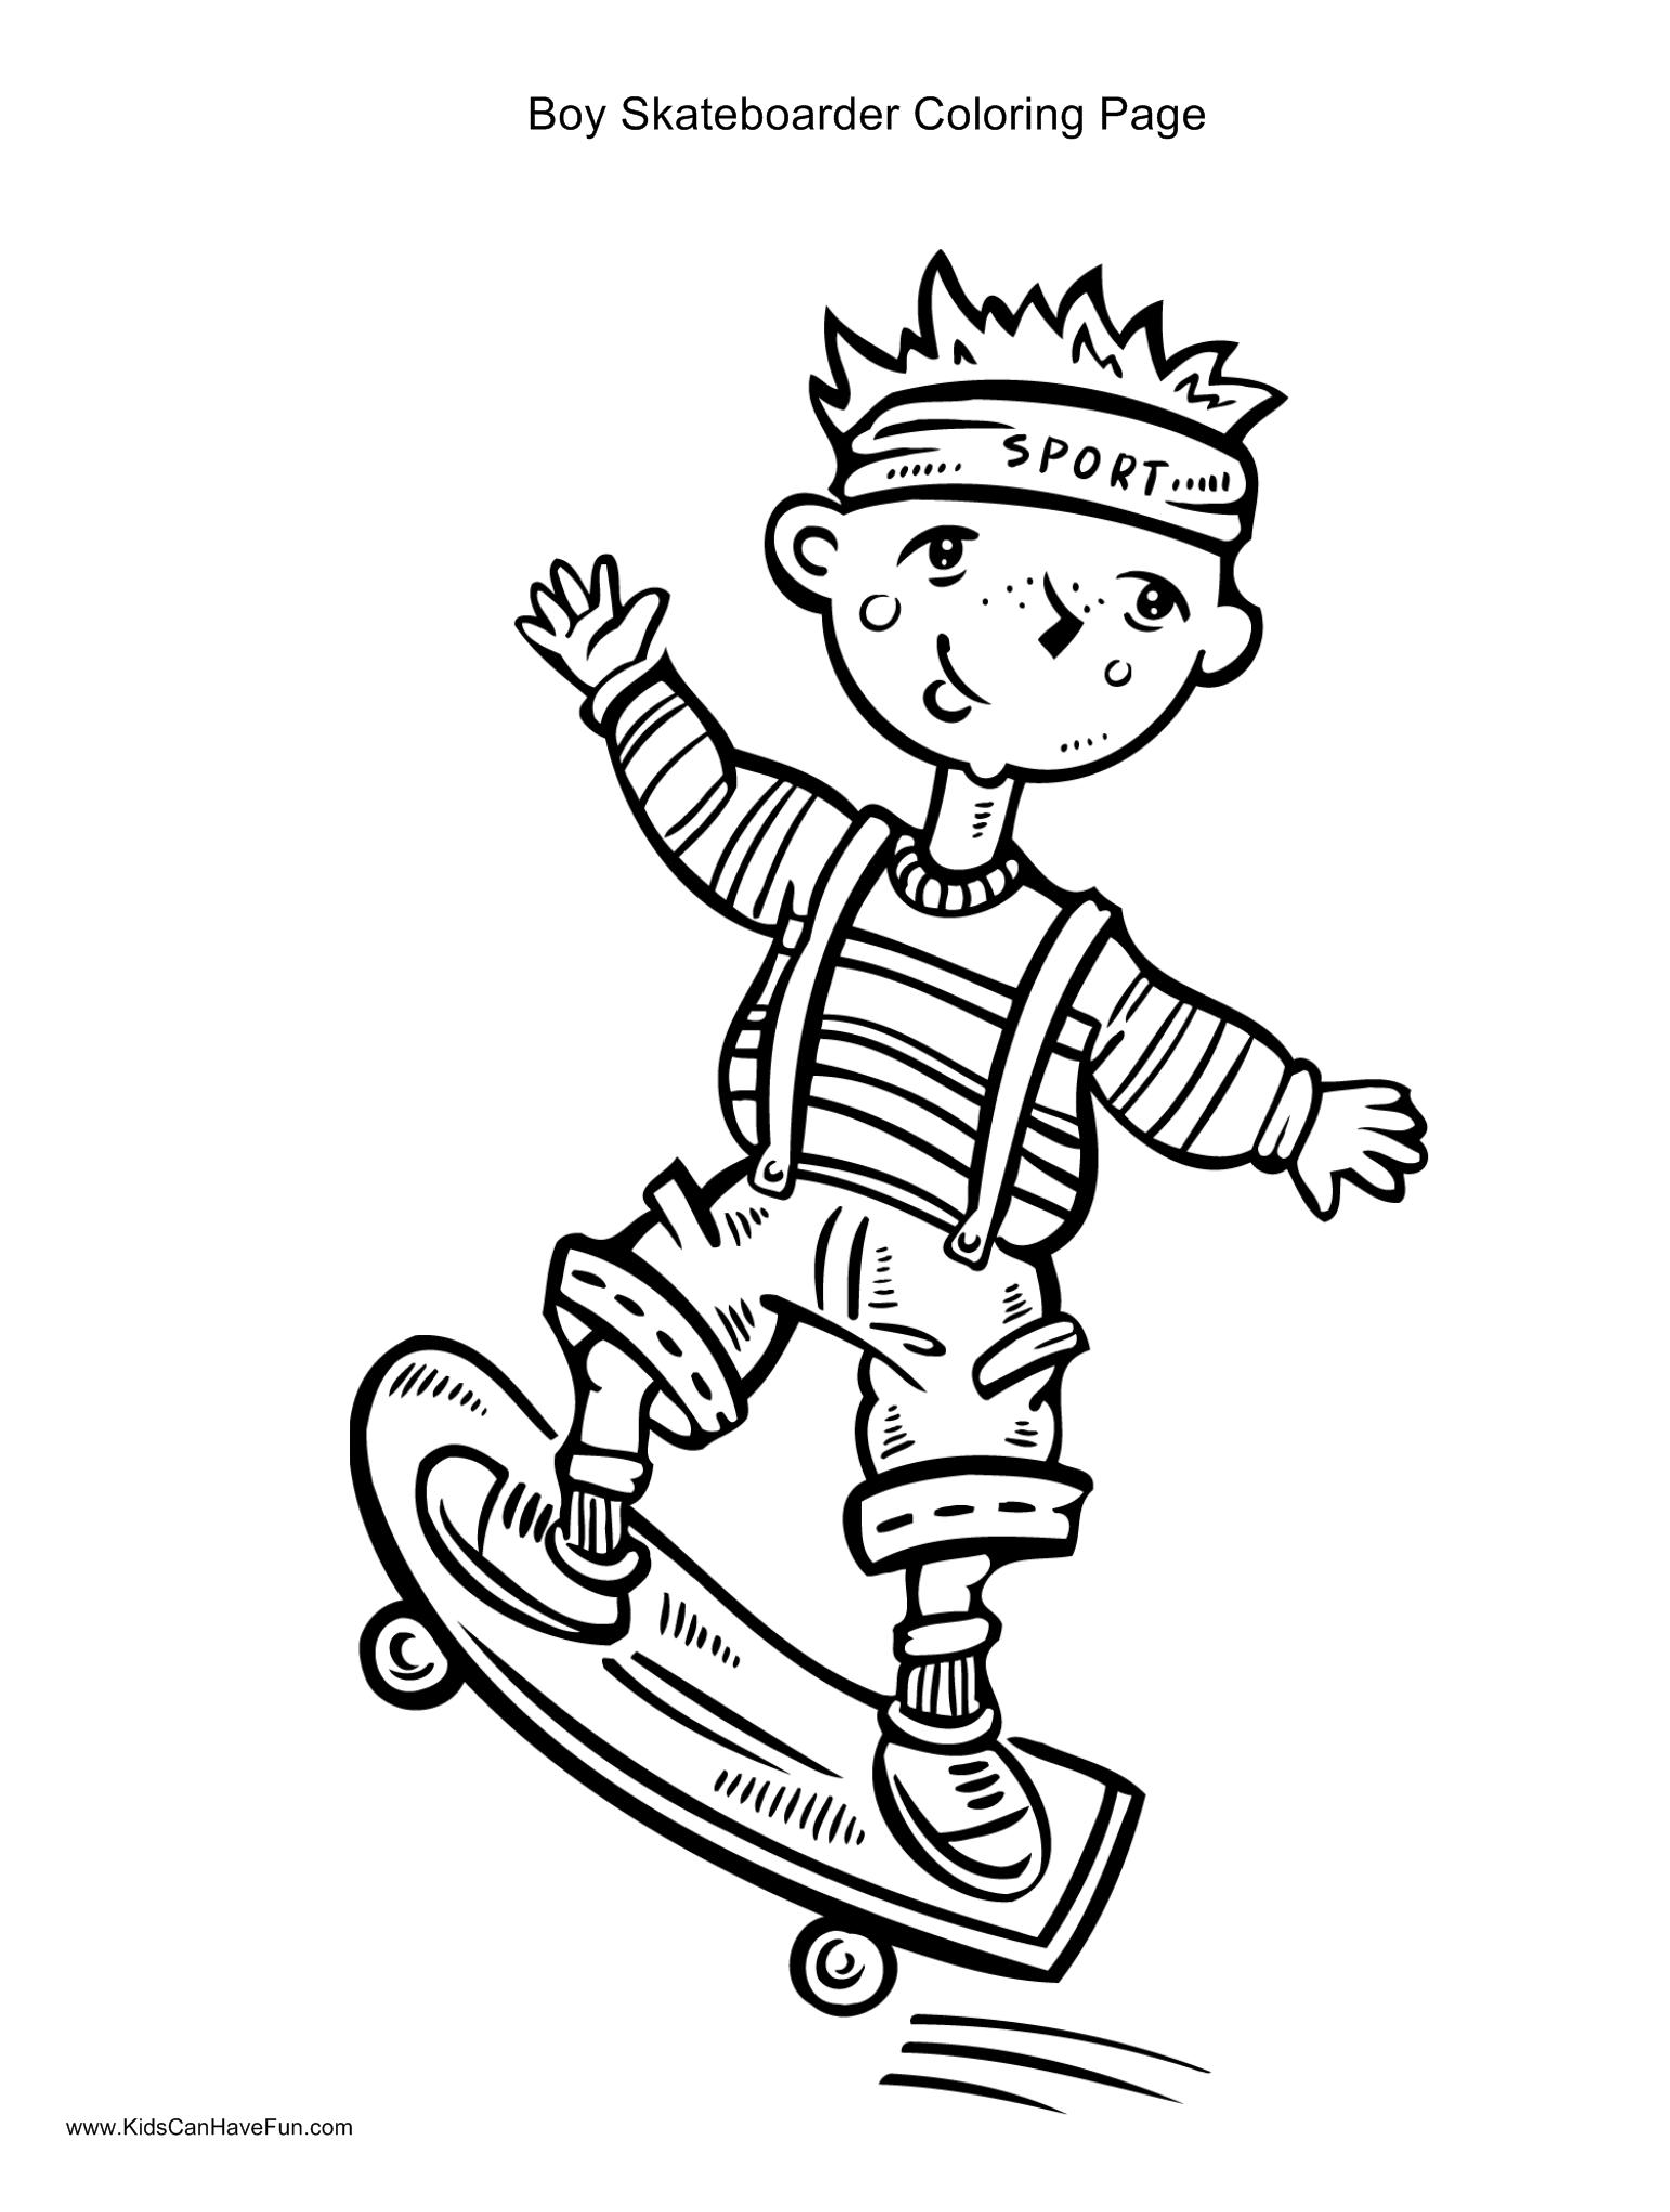 Skateboarding Coloring Pages - Coloring Home